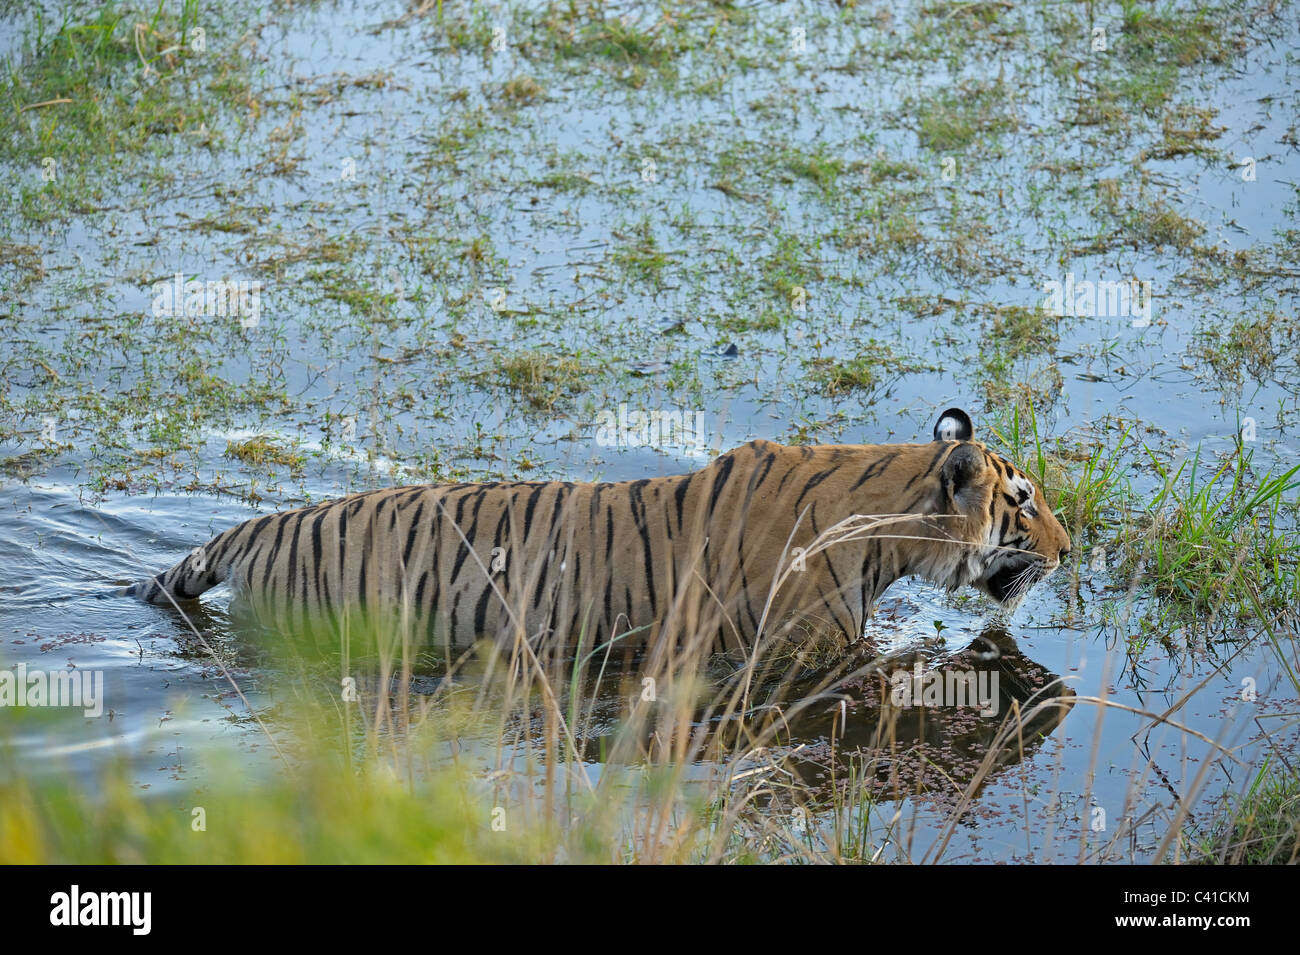 Tiger swimming in the lakes of Ranthambhore national park in north India - Stock Image